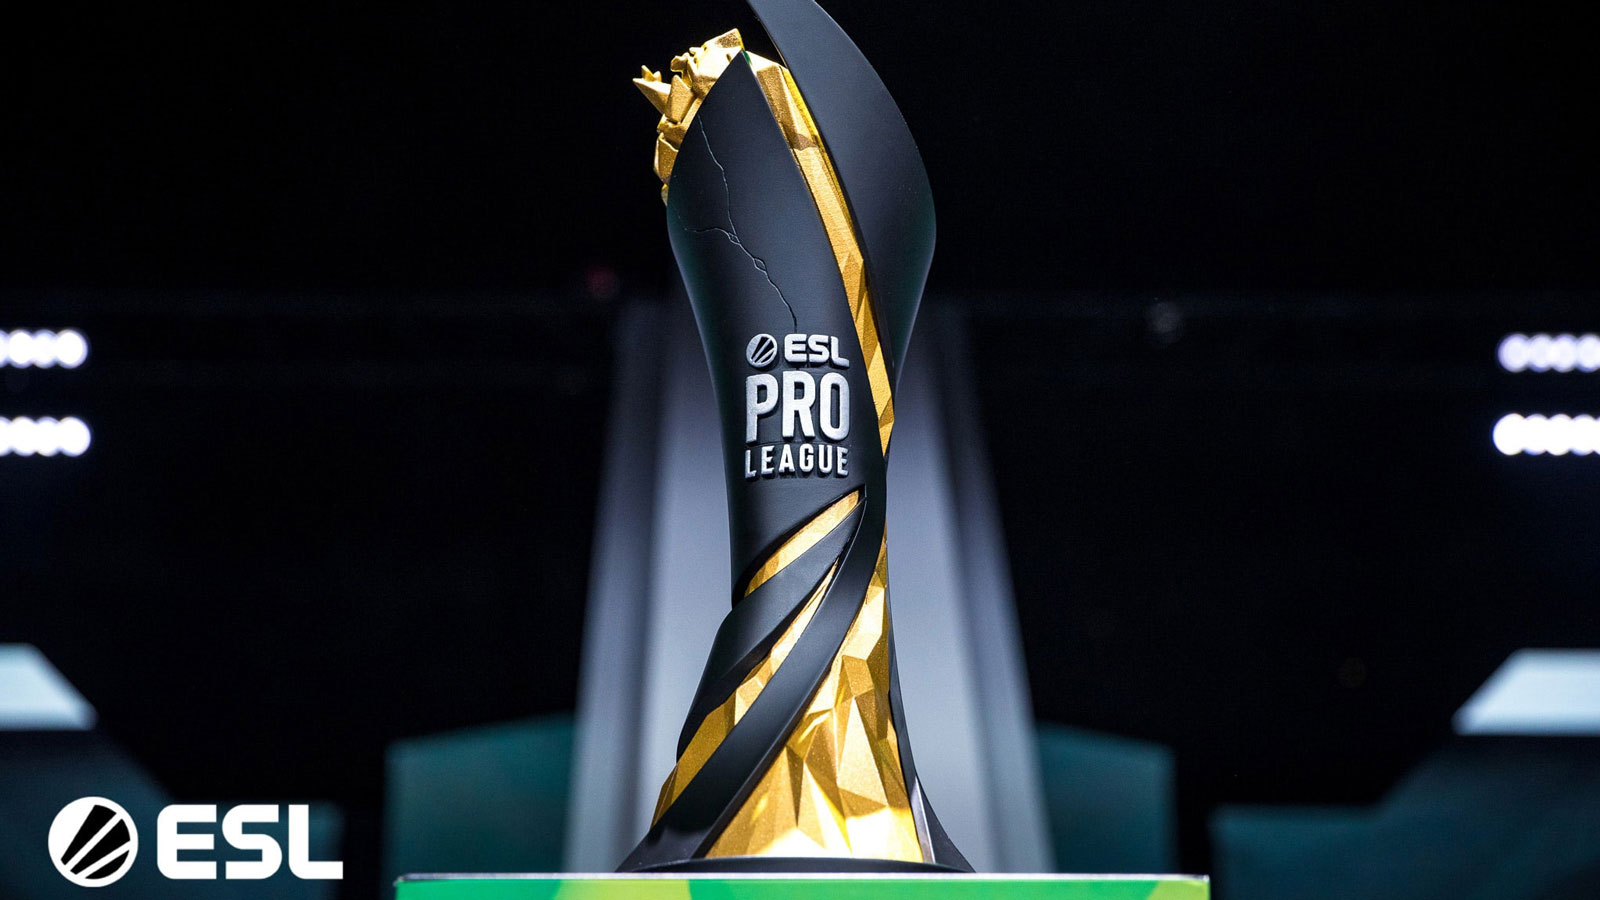 ESL Pro League trophy